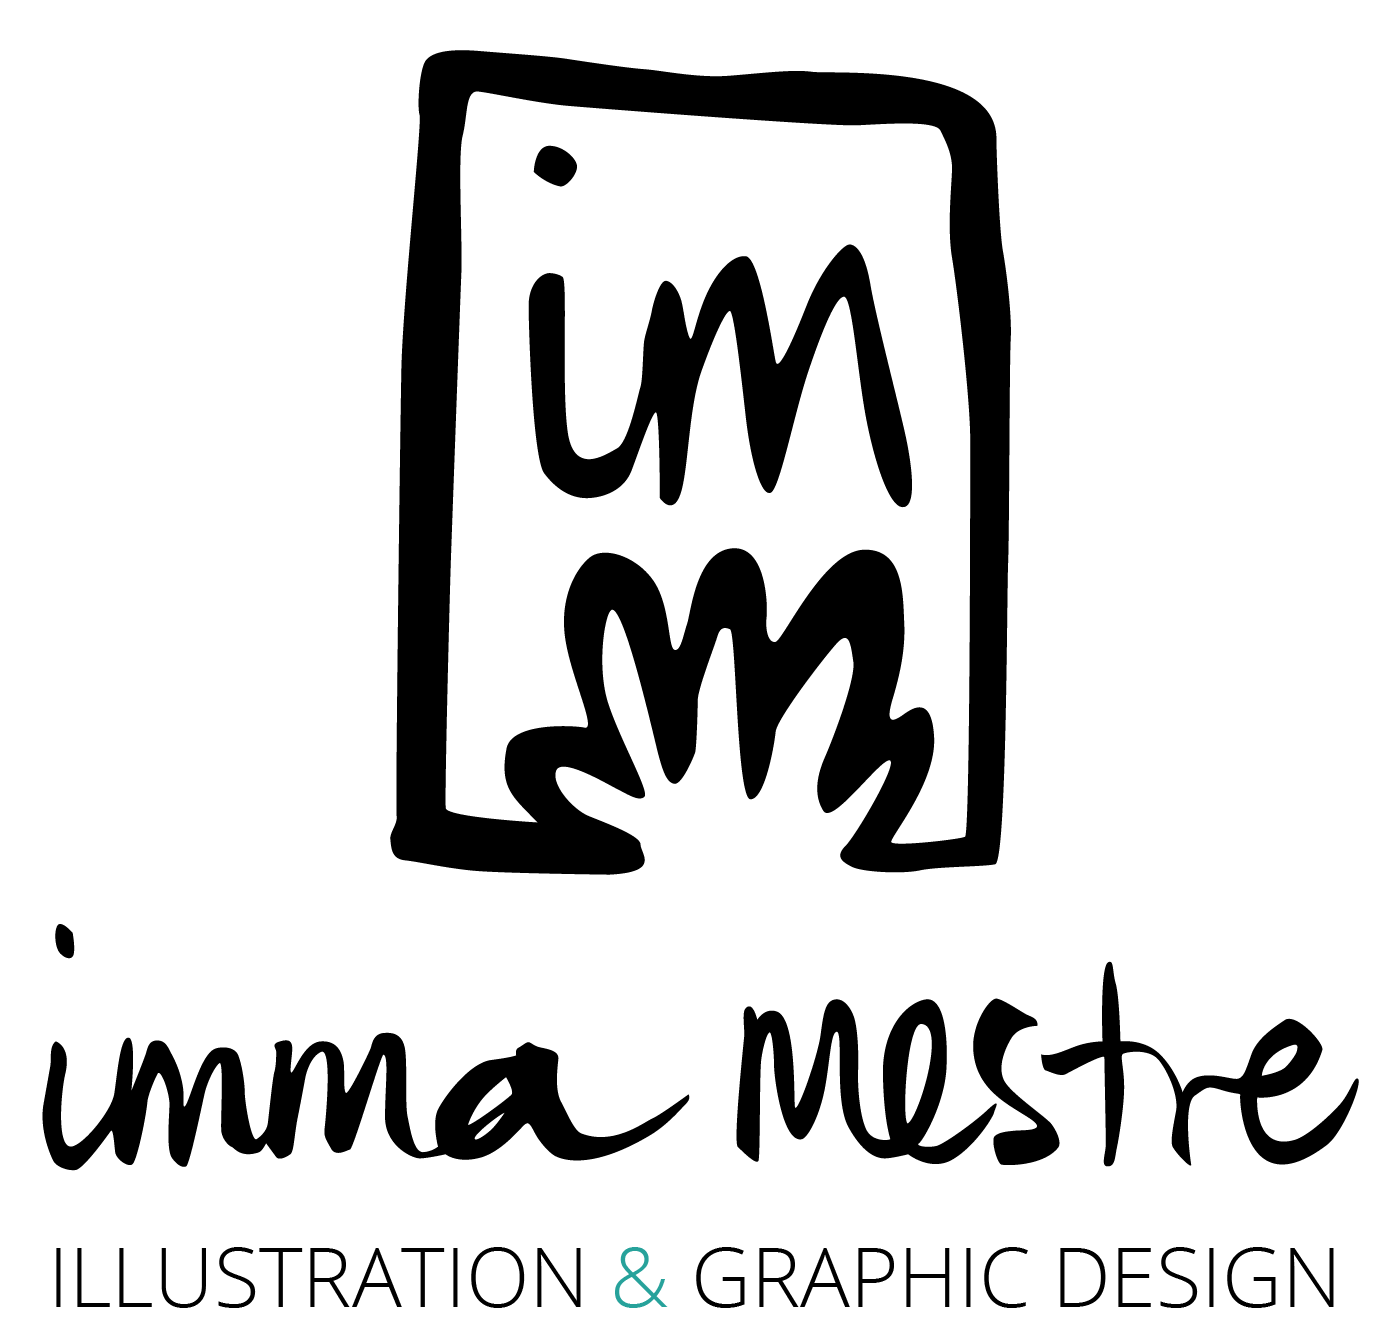 Imma Mestre - Illustration and Graphic Design